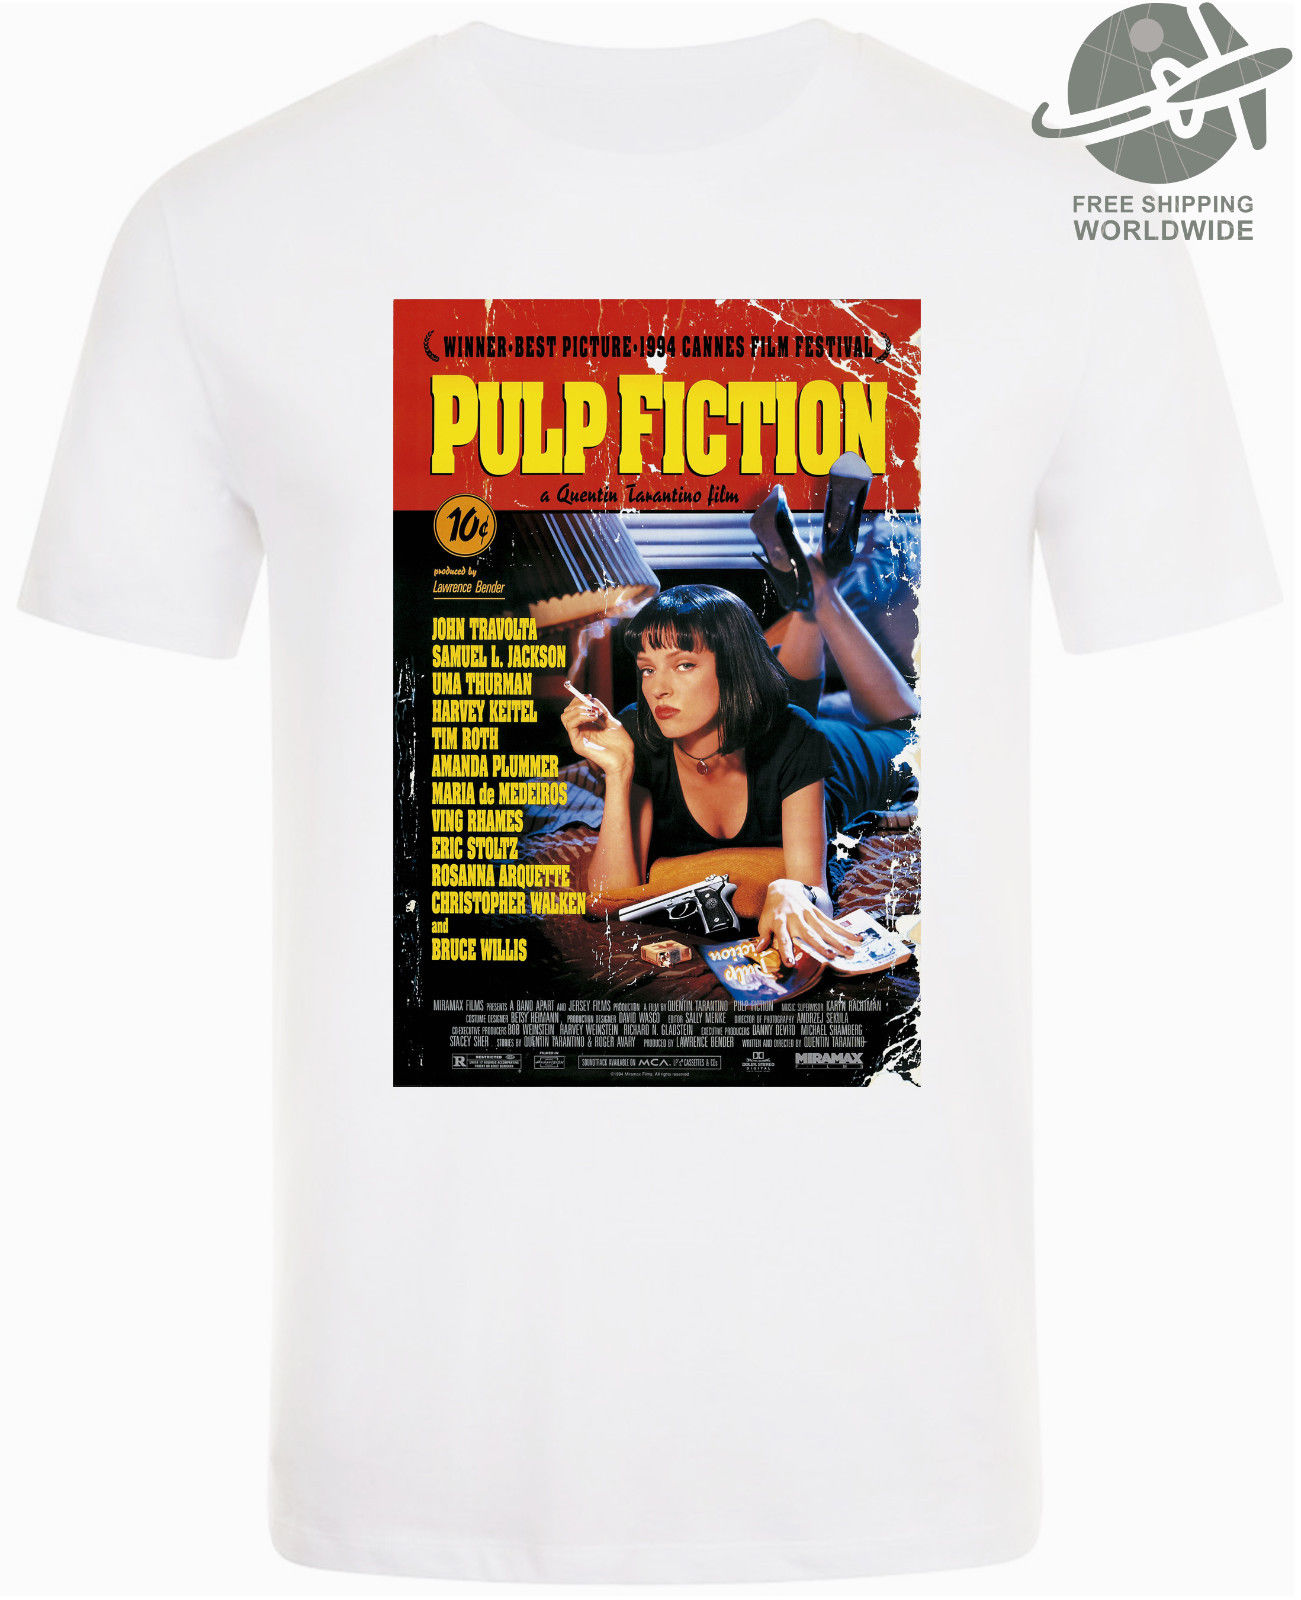 pulp-fiction-movie-t-shirt-uma-thurman-font-b-tarantino-b-font-travolta-xs-2xl-free-shipping